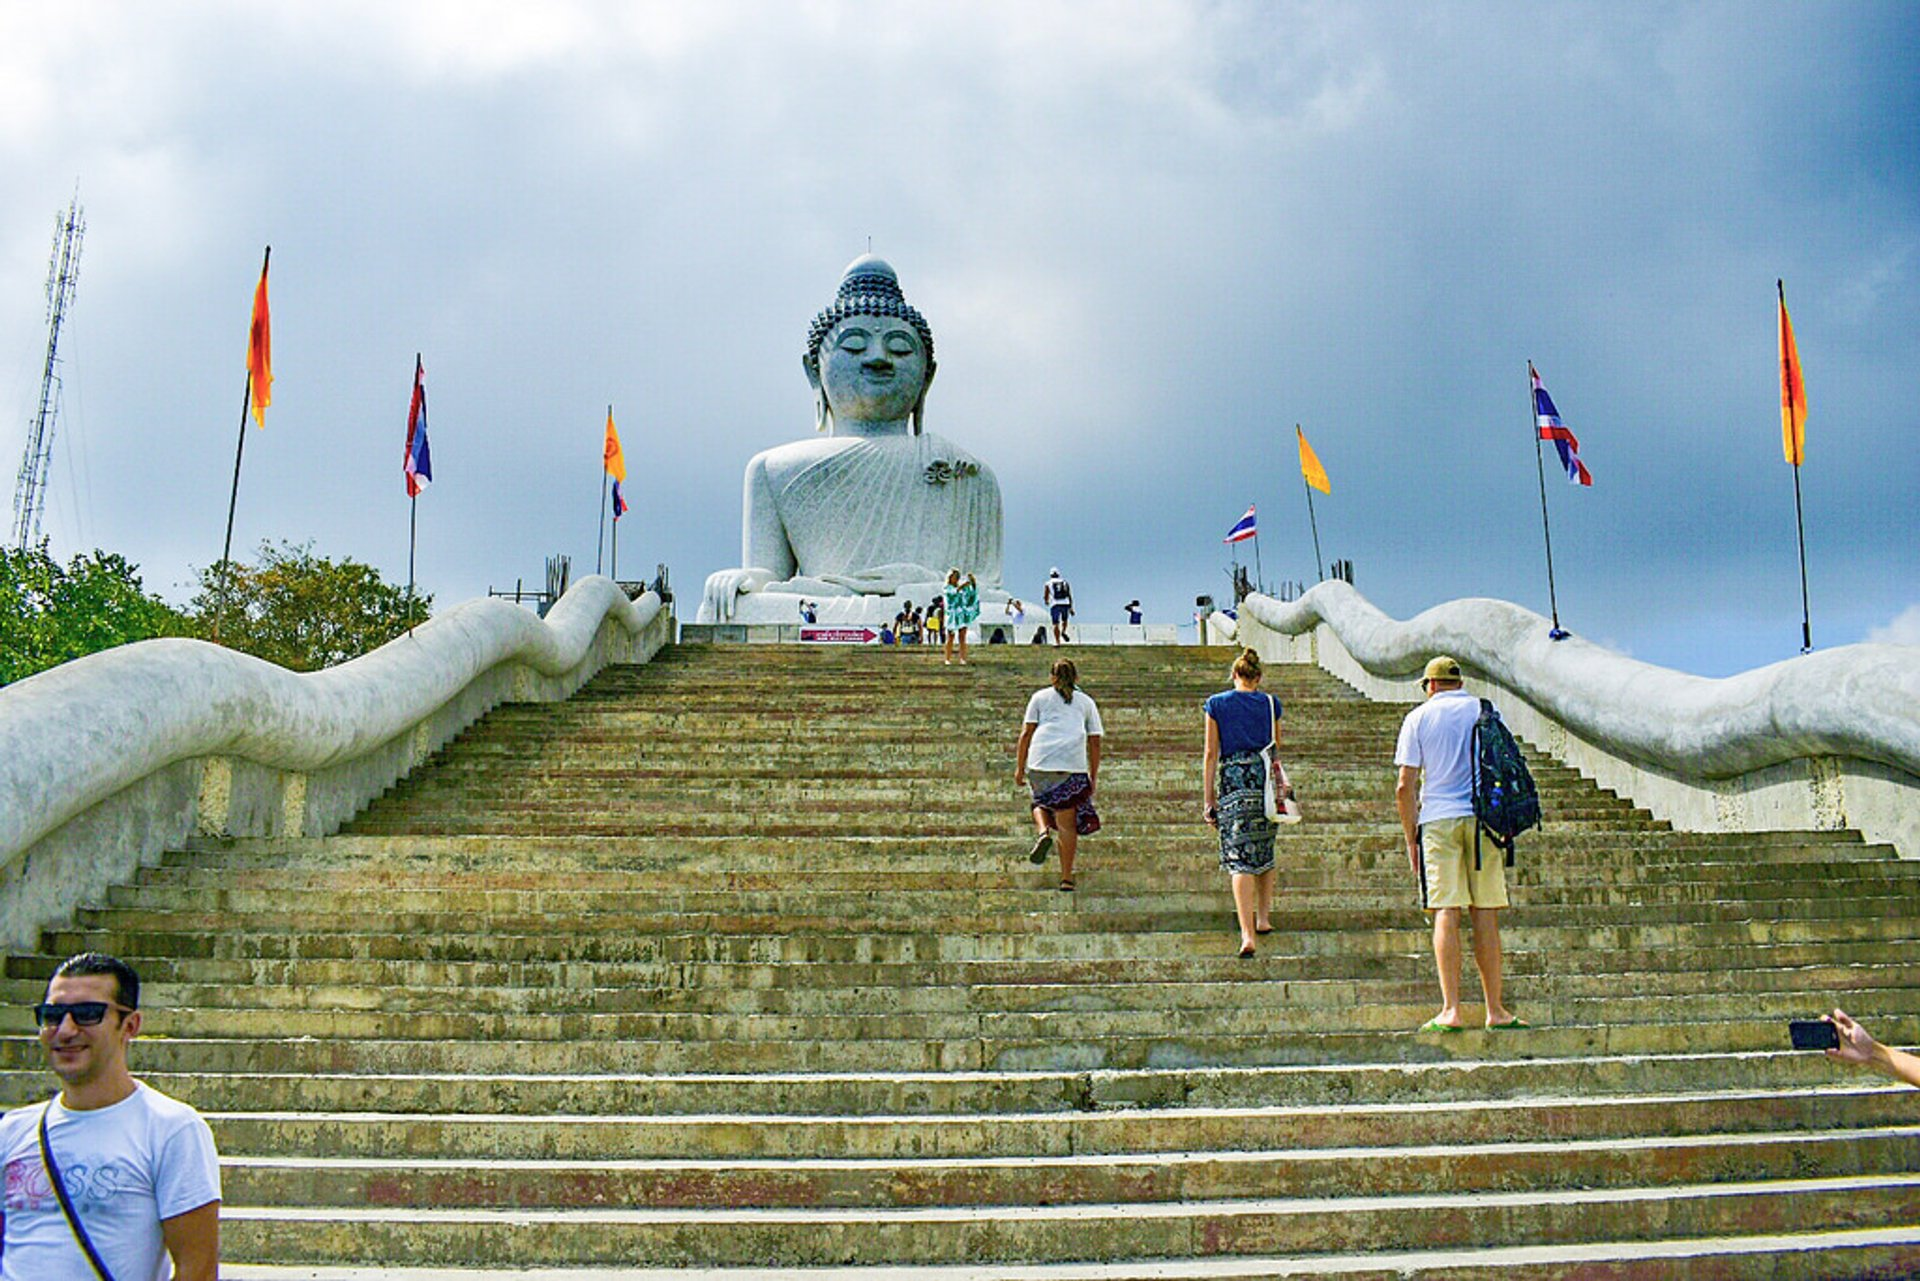 Best time to see Big Buddha in Phuket 2020